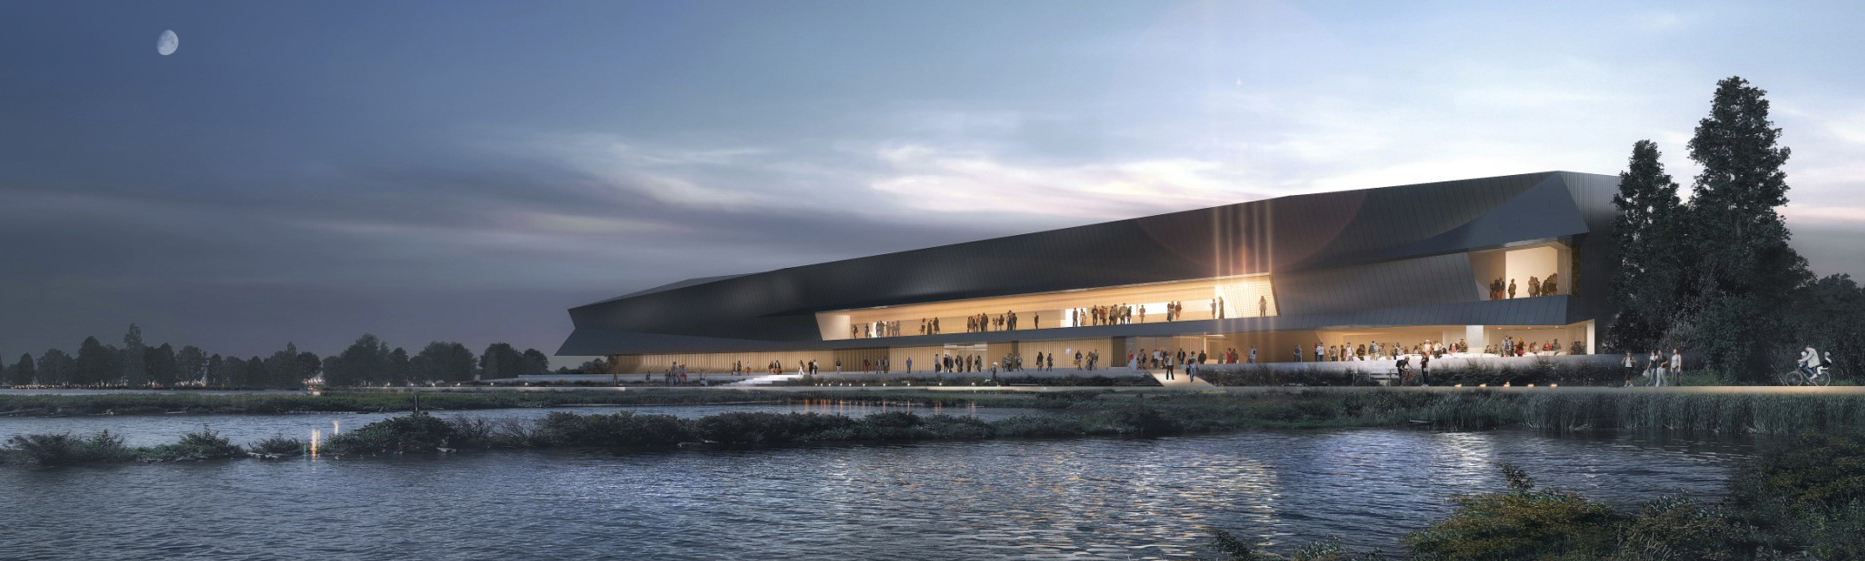 rendering of new waterfront gallery at dusk